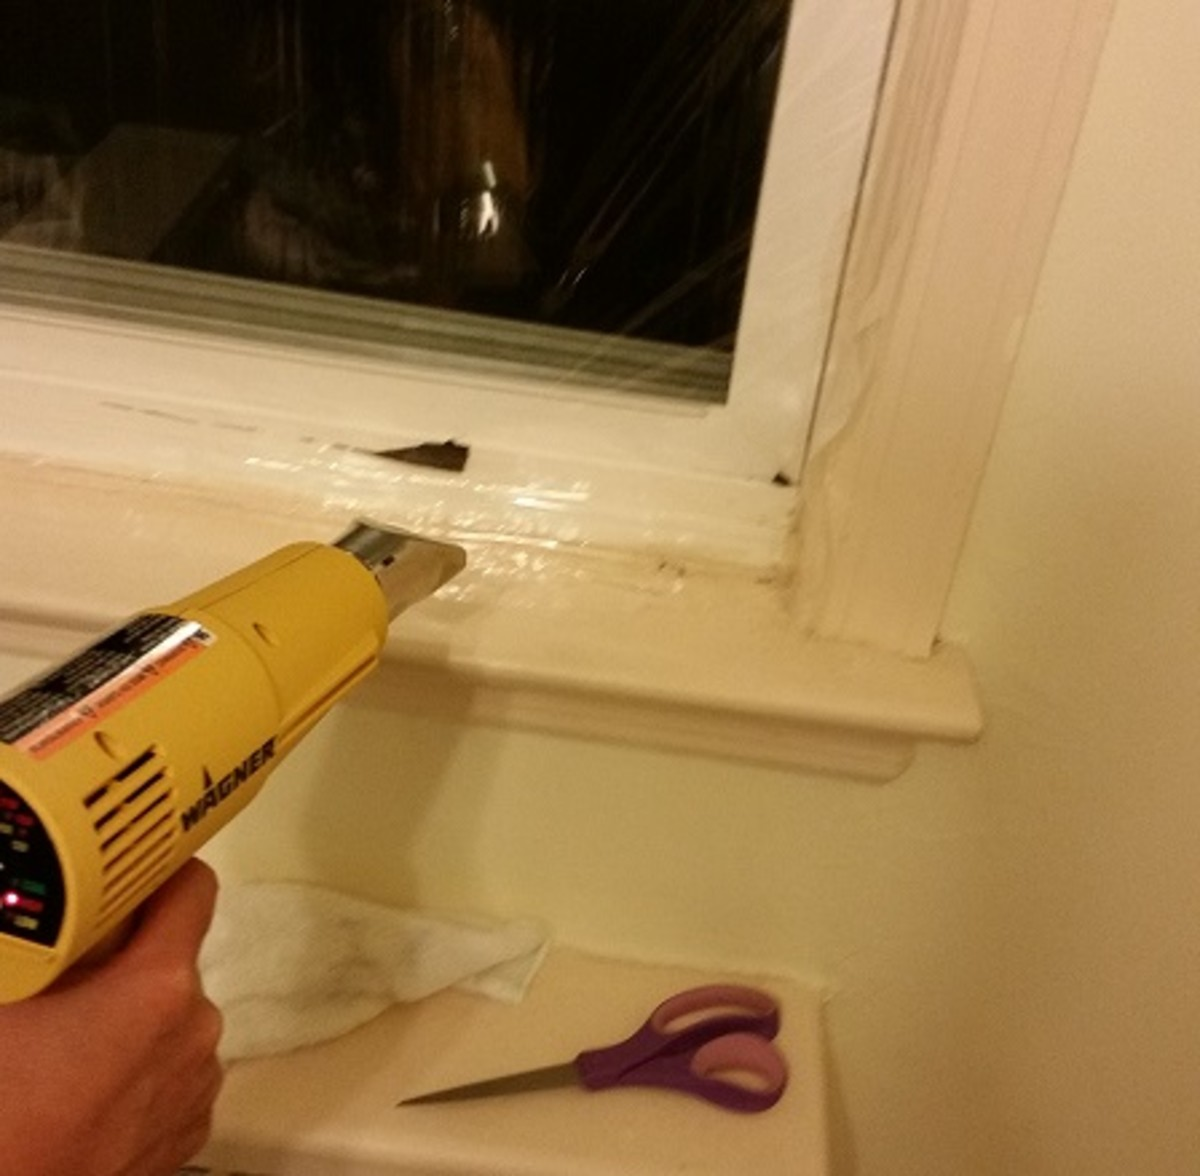 Use the heat gun to tightly fit the plastic shrink wrap to the window / window space.